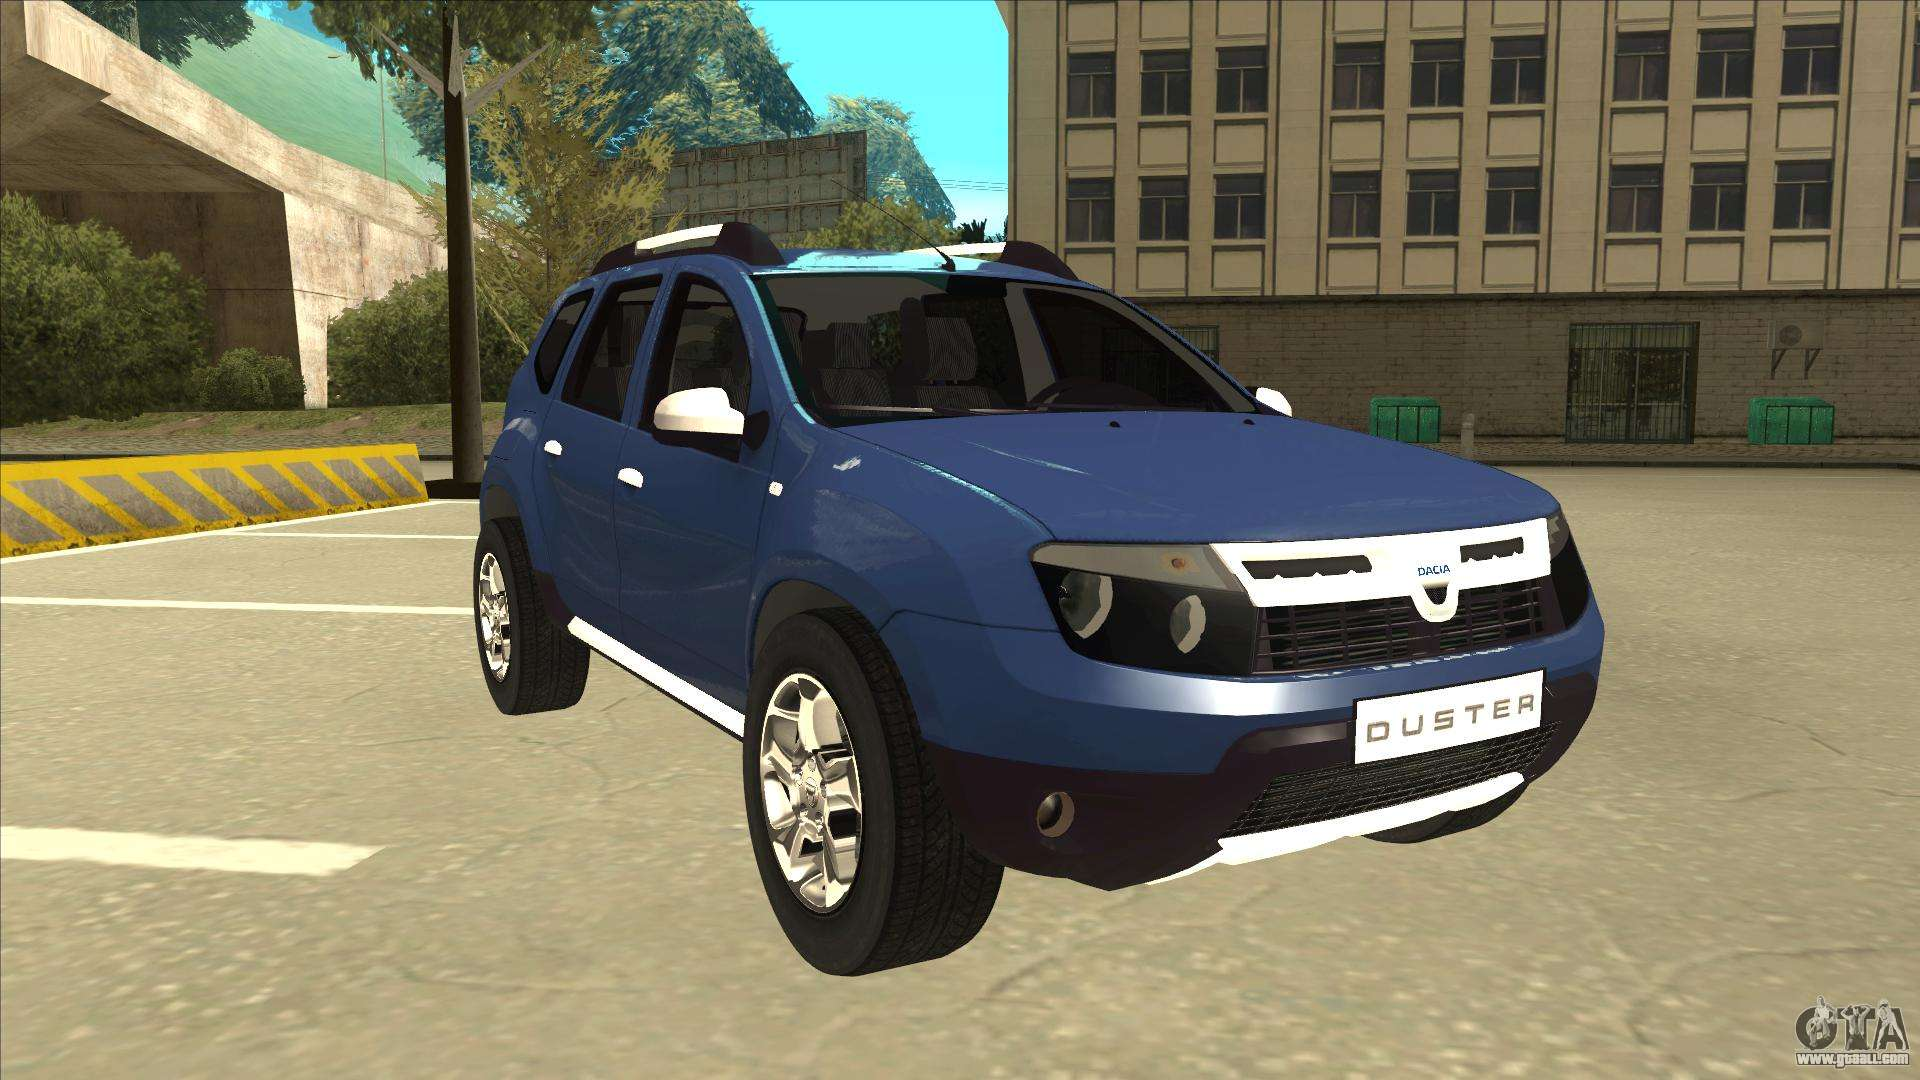 dacia duster 2014 for gta san andreas. Black Bedroom Furniture Sets. Home Design Ideas